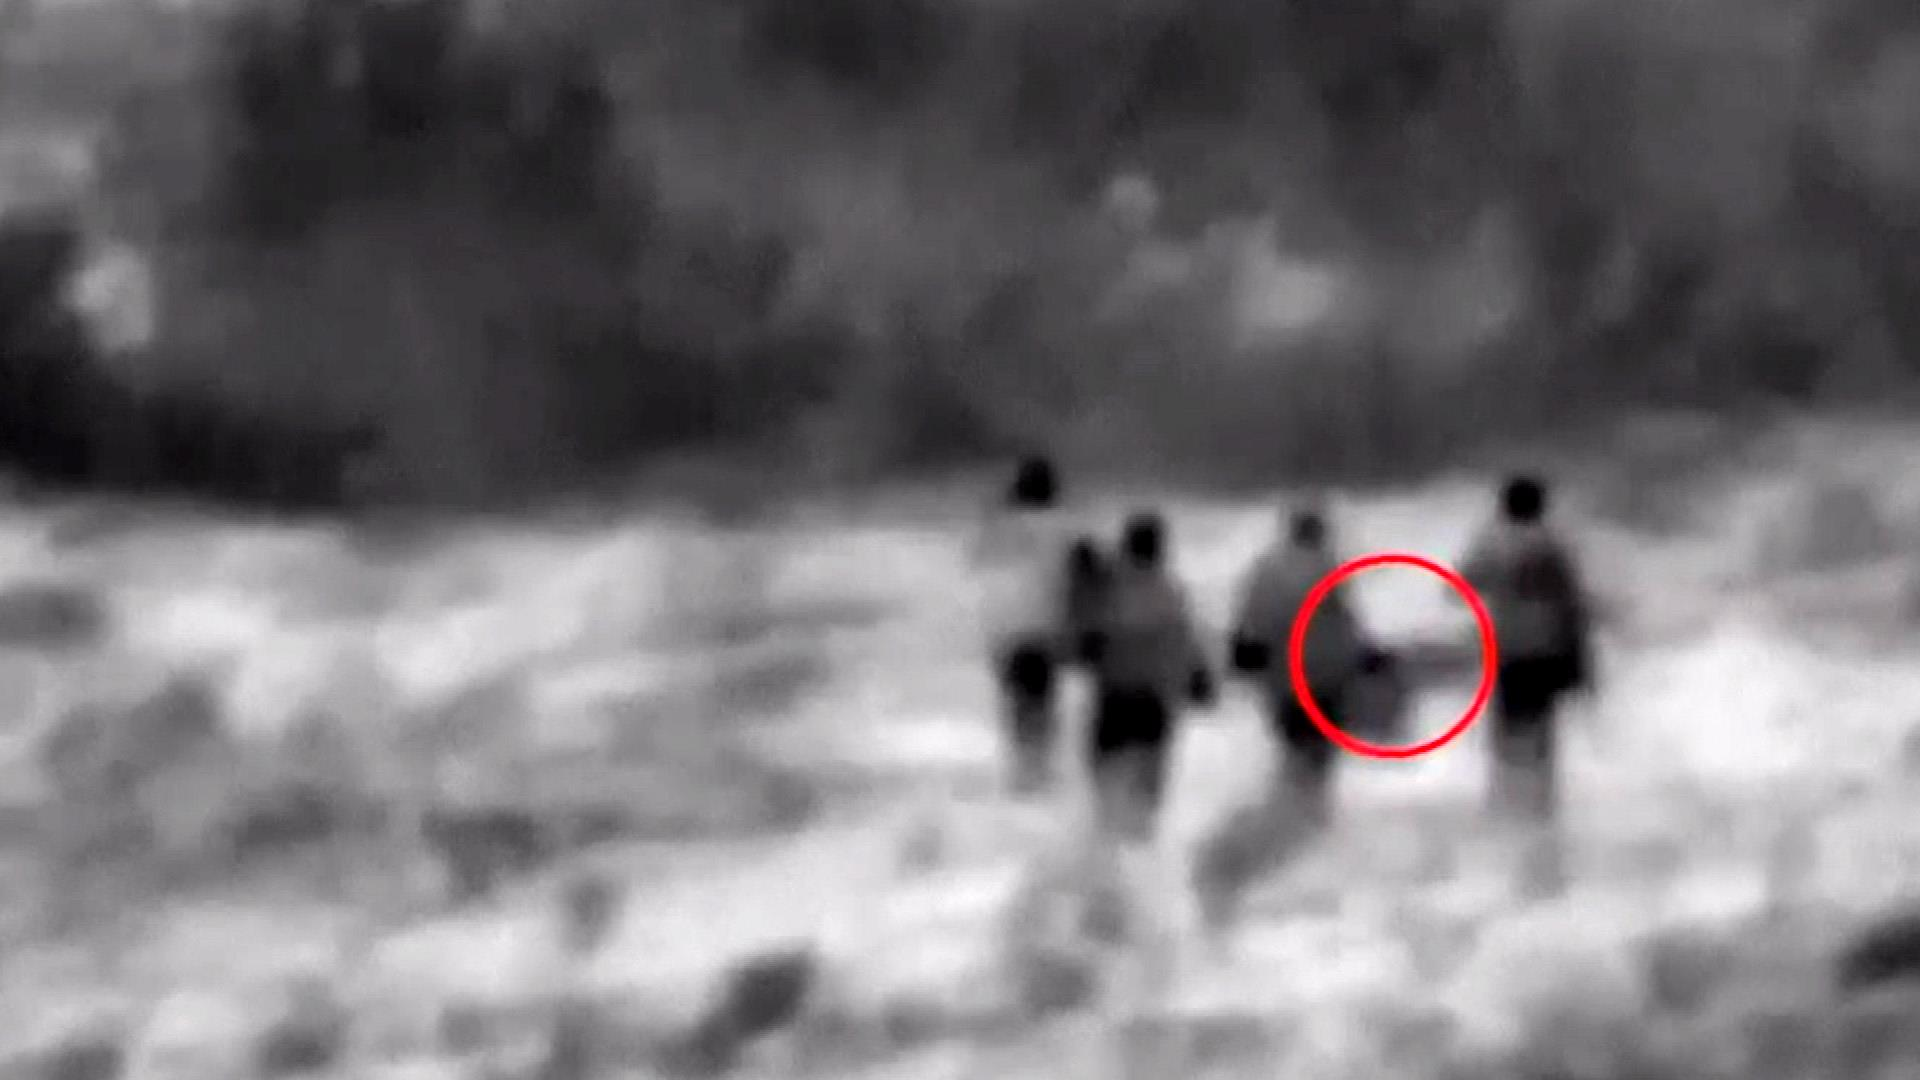 Israeli military video purports to show drone carried by Iranian forces in Syria